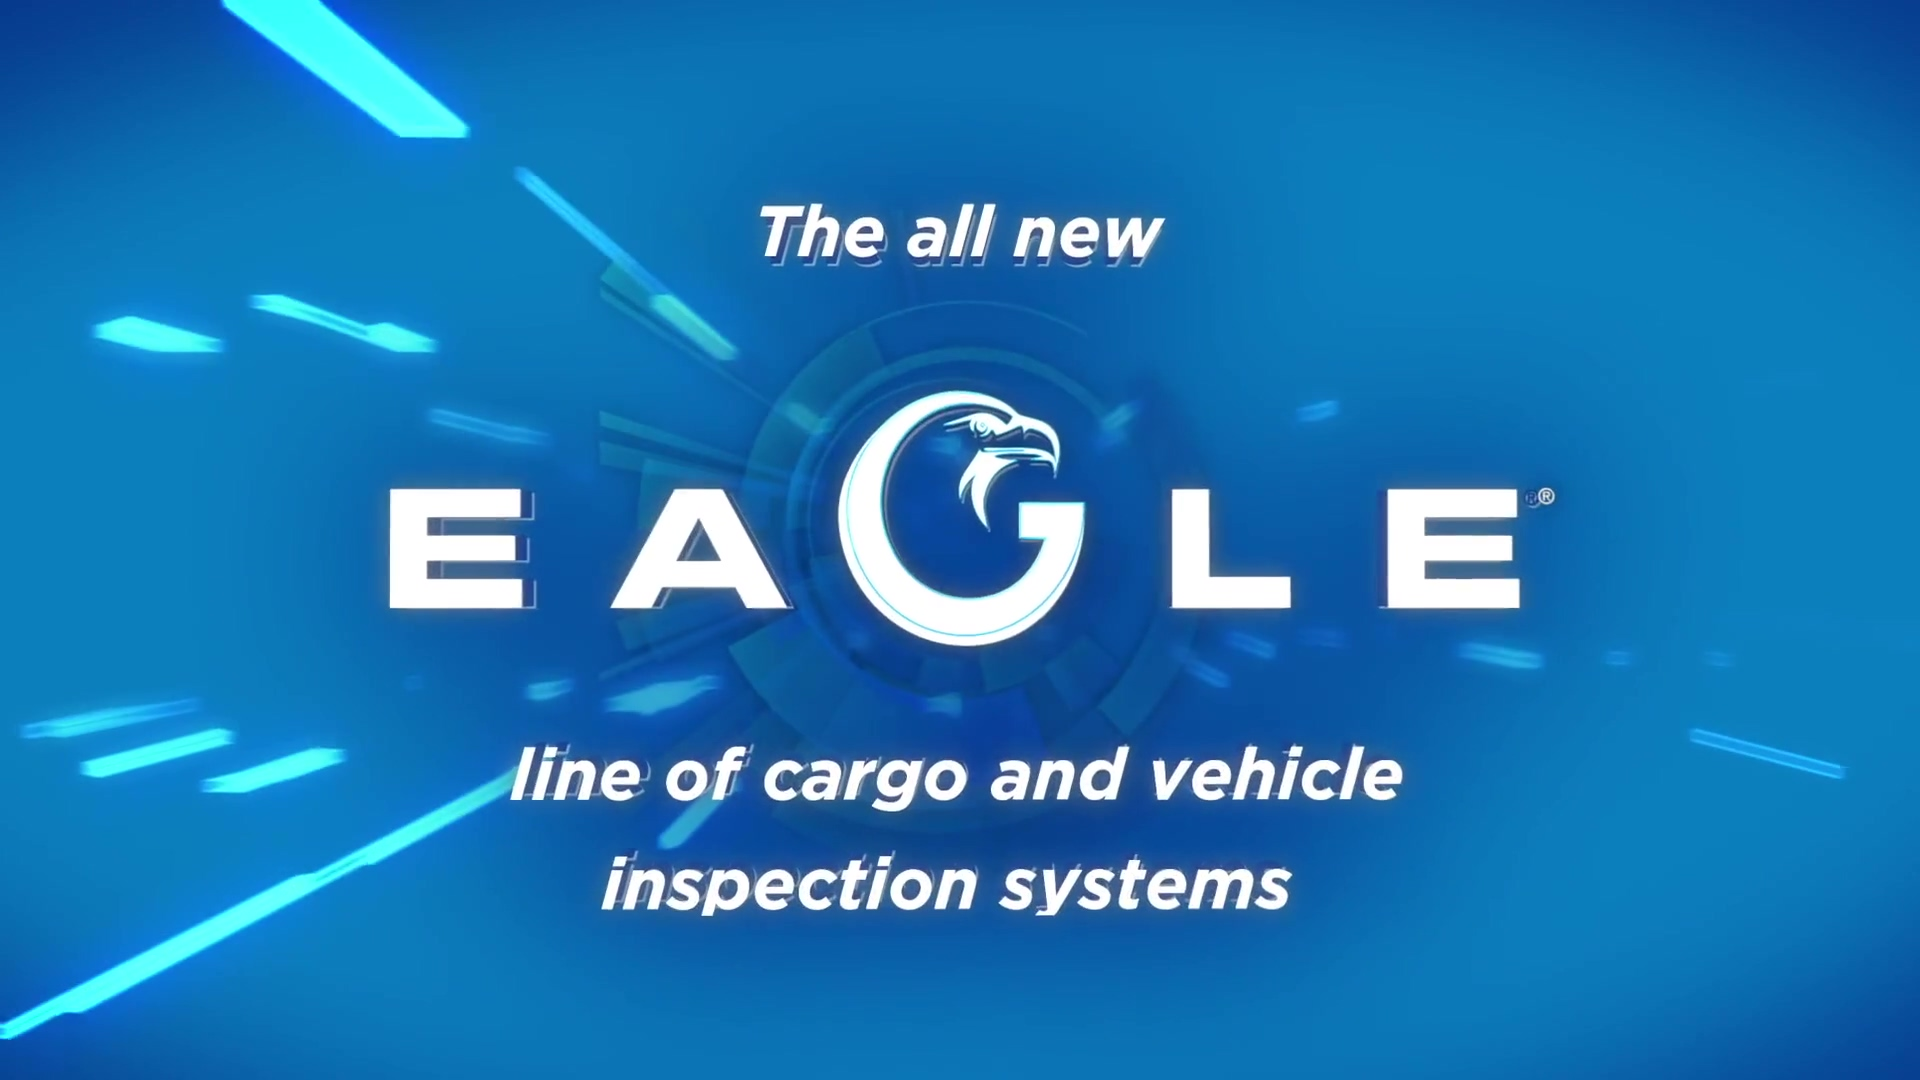 Introducing the Eagle Line_HD 1920x1080